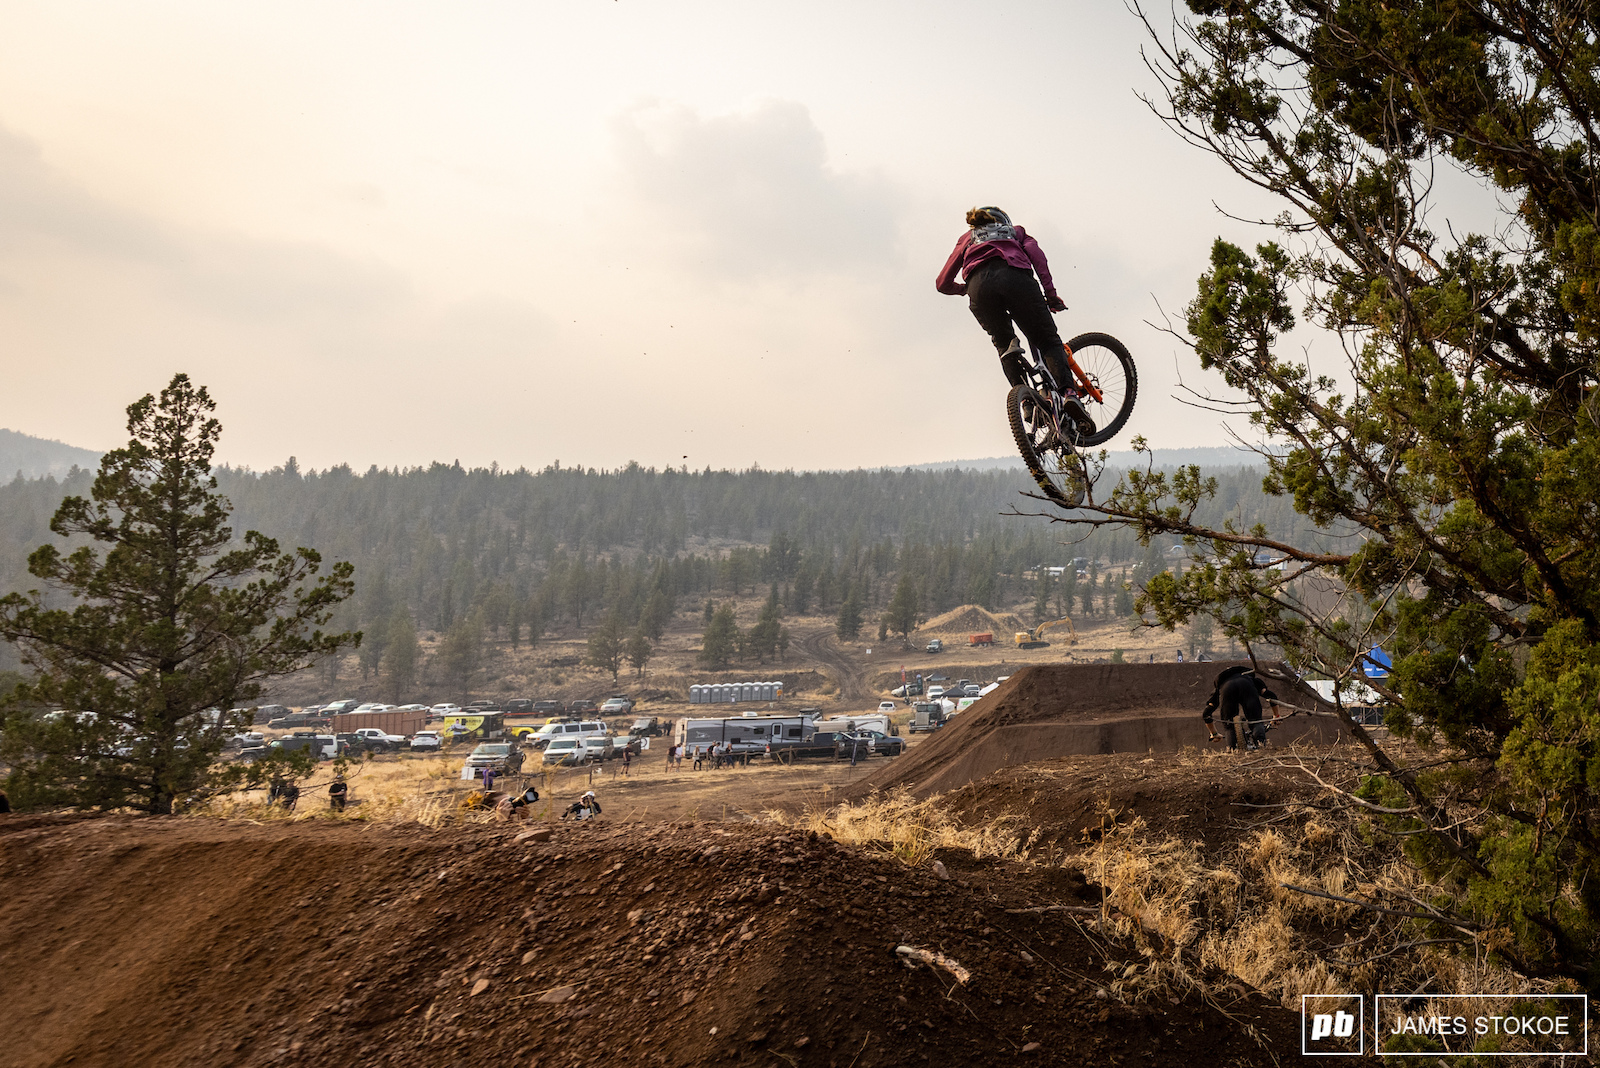 Seriously though Brooke is 15 and she easily rides better than the majority of you out there that have 10 years on her.